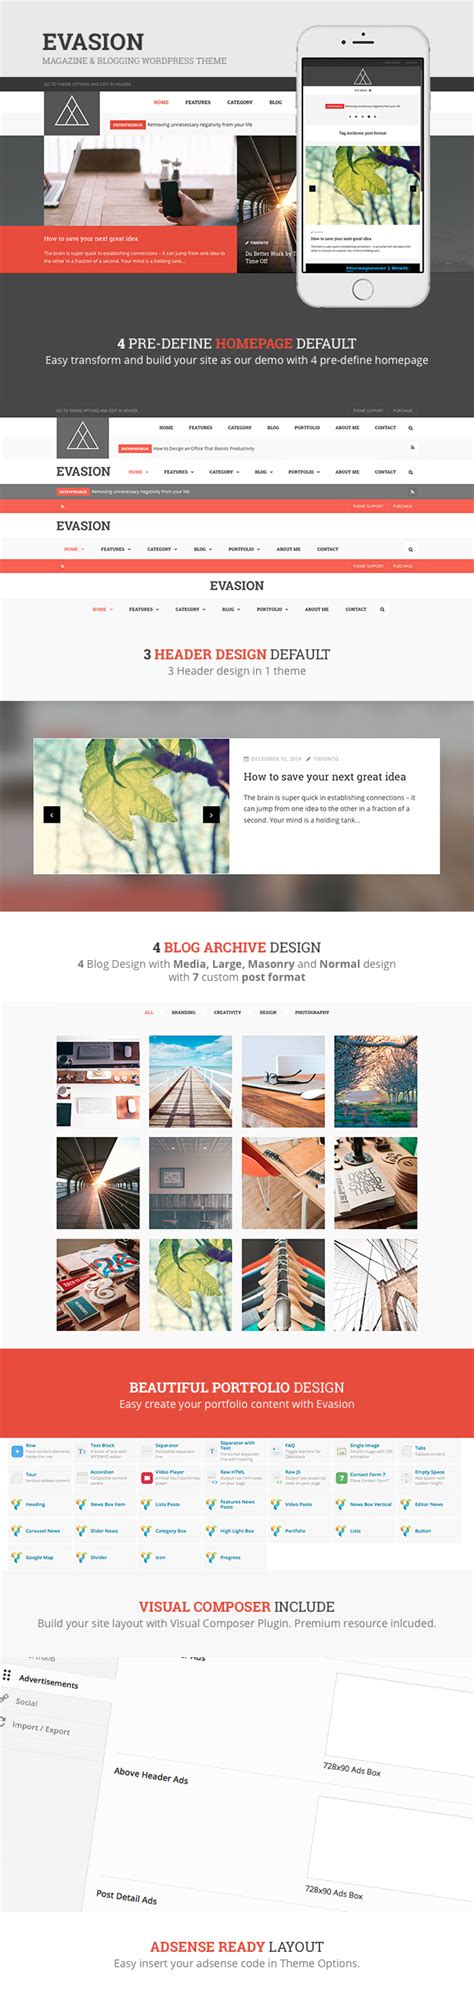 evasion template magazine blogging wordpress